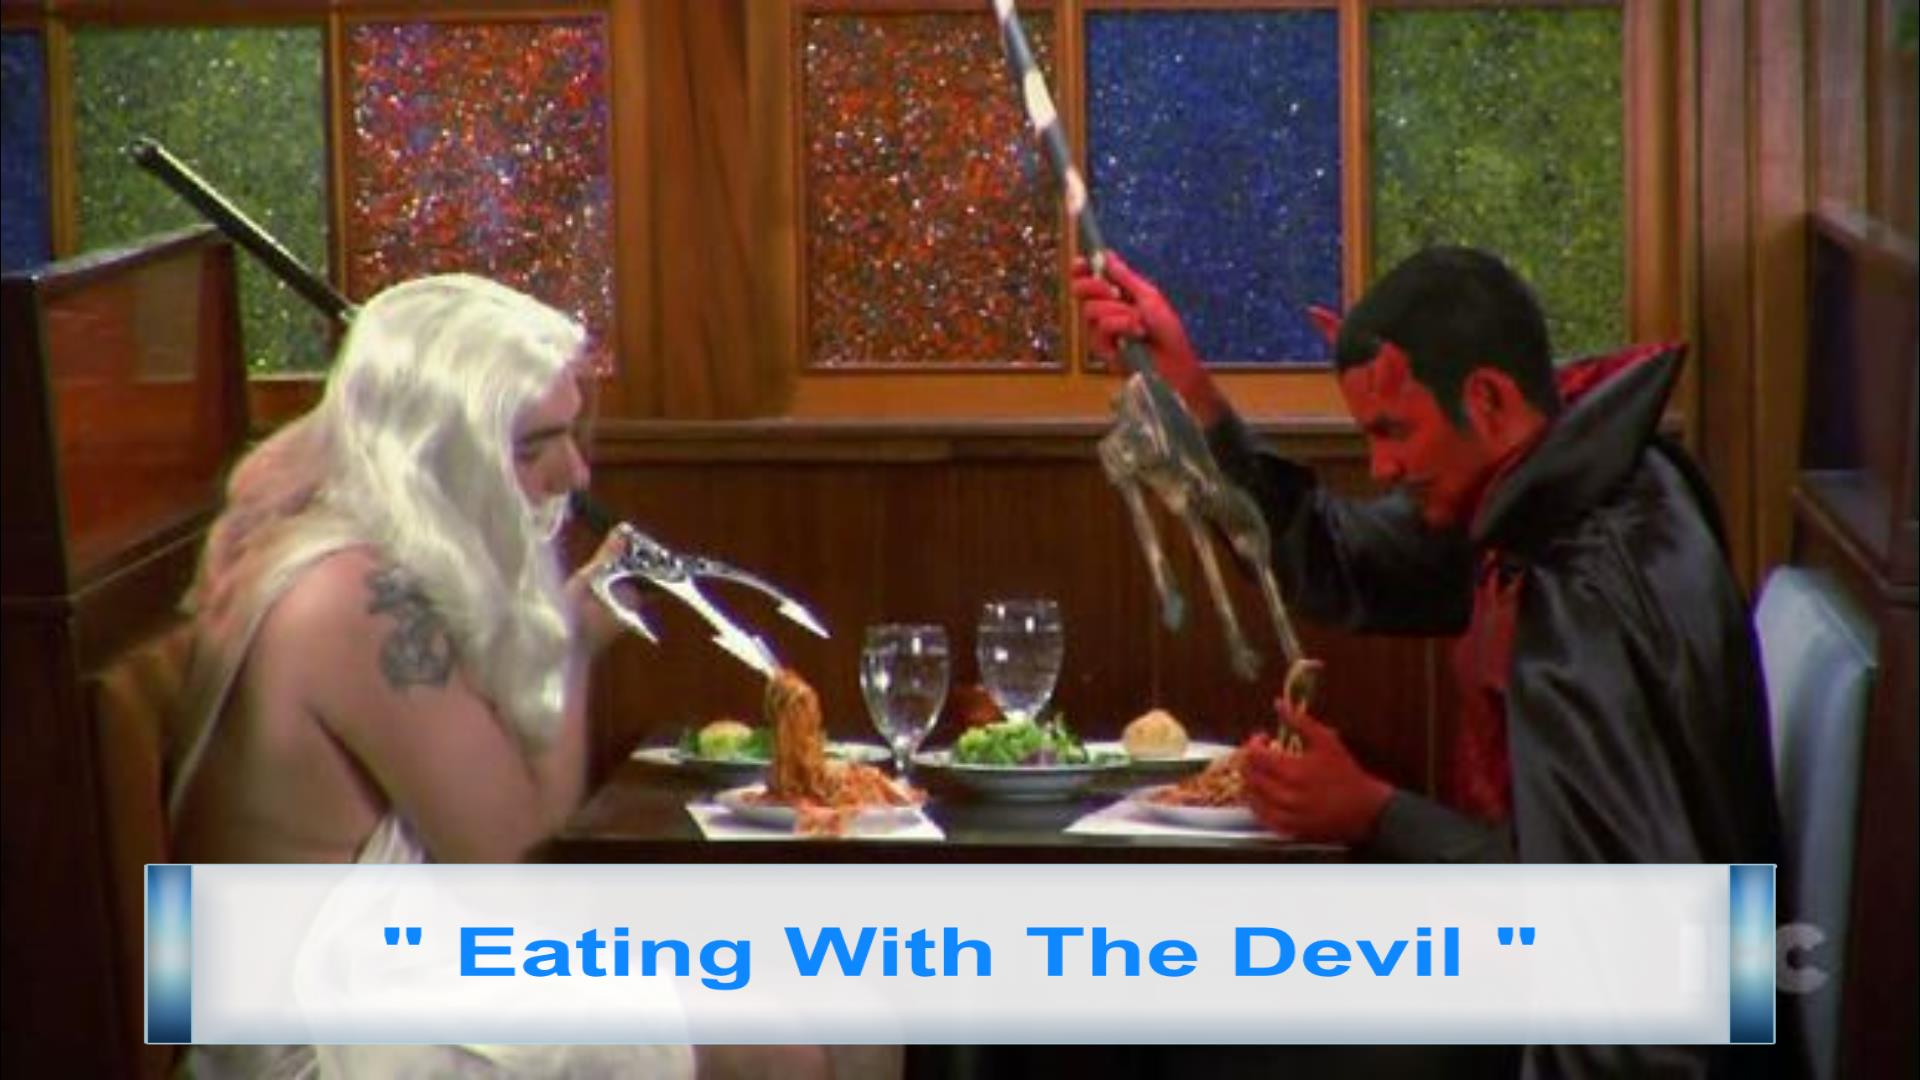 Eating With The Devil